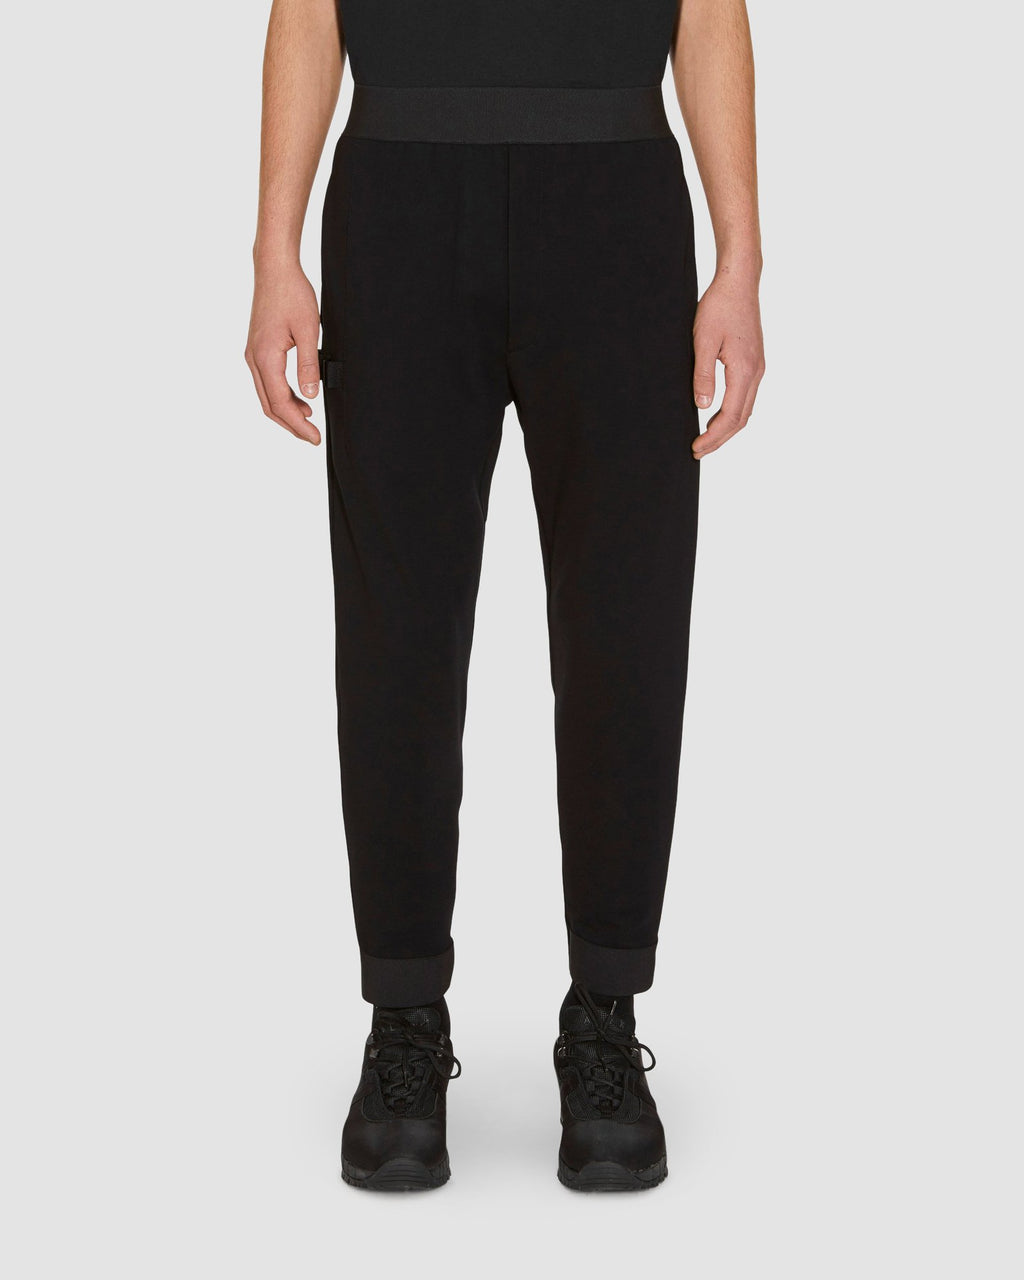 TRACK PANT W REMOVABLE POUCH